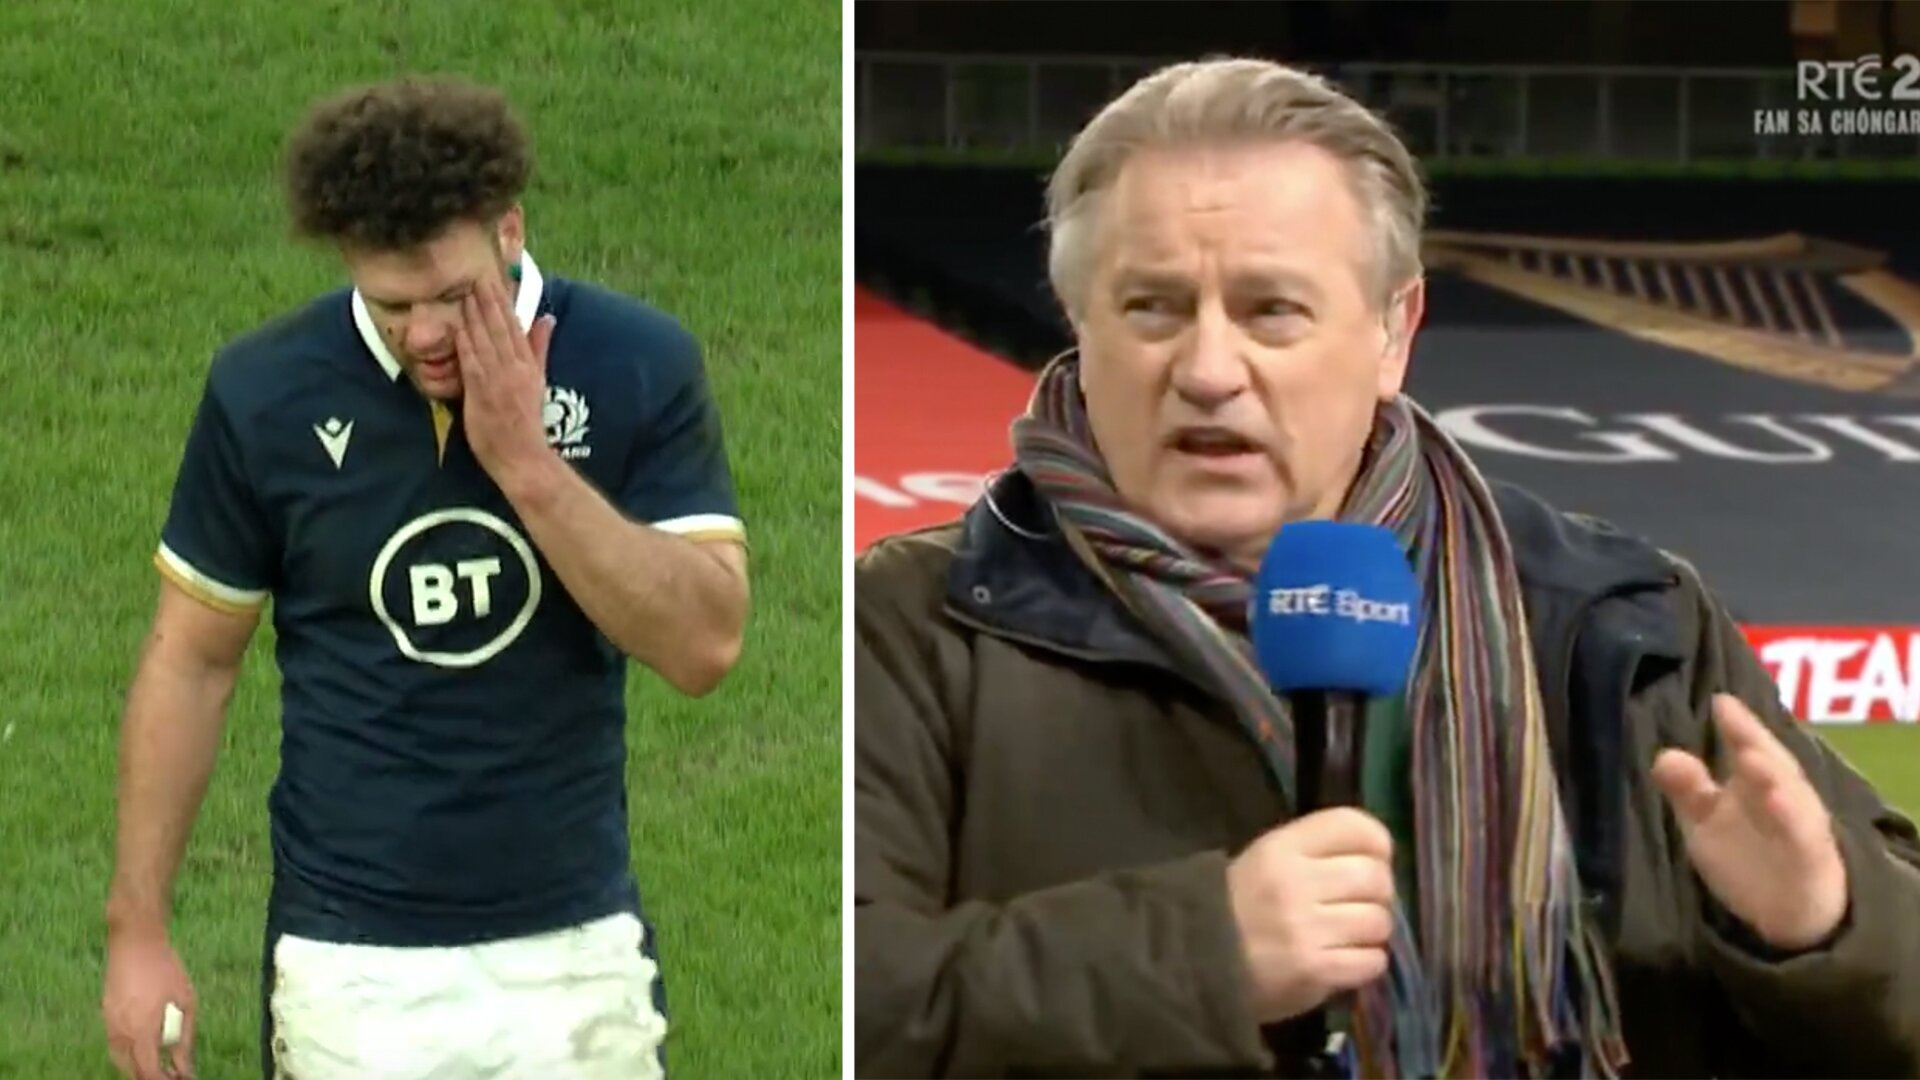 Fans praising Eddie O'Sullivan for savagely calling Scotland rugby 'delusional' in post match comments